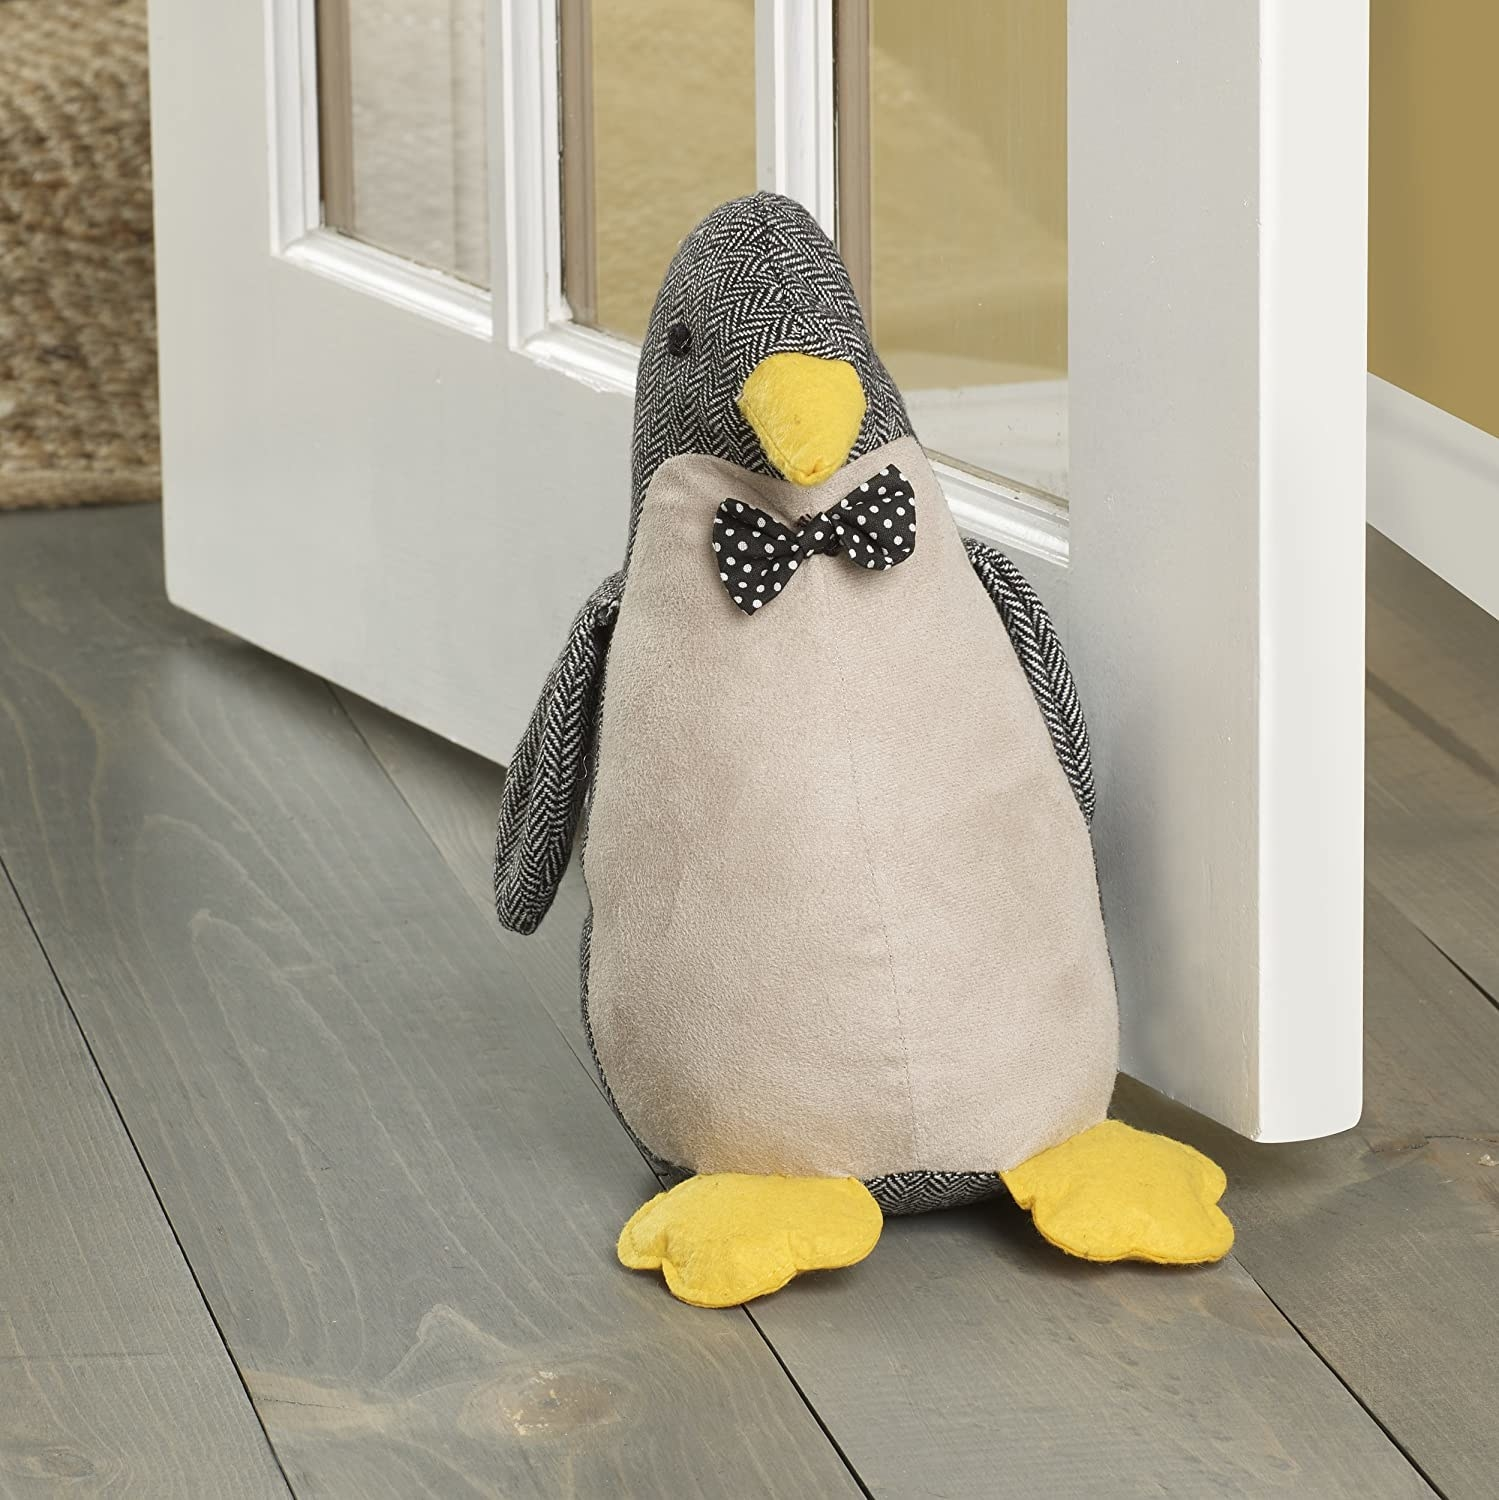 A penguin with a bowtie is on the ground holding a door open